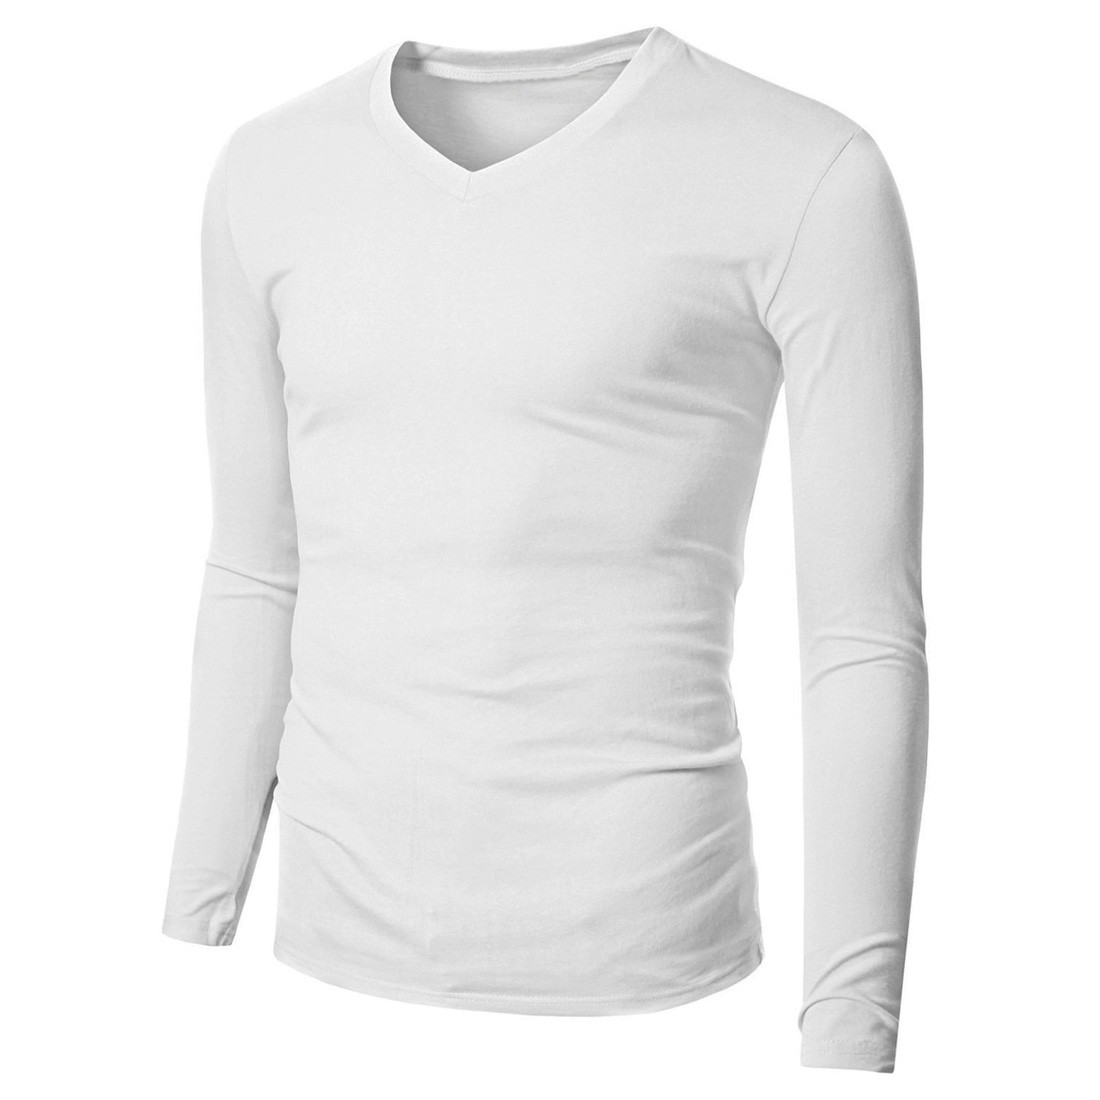 % Cotton Long Sleeve Shirts. Showing 40 of results that match your query. Search Product Result. Product - Call of Duty - Modern Warfare 3 Long Sleeve T-Shirt. Product - J_H_I Old Bikes And Good Whiskey Get Better With Age Motorcycle Biker Gift Mens Long Sleeve Shirts.